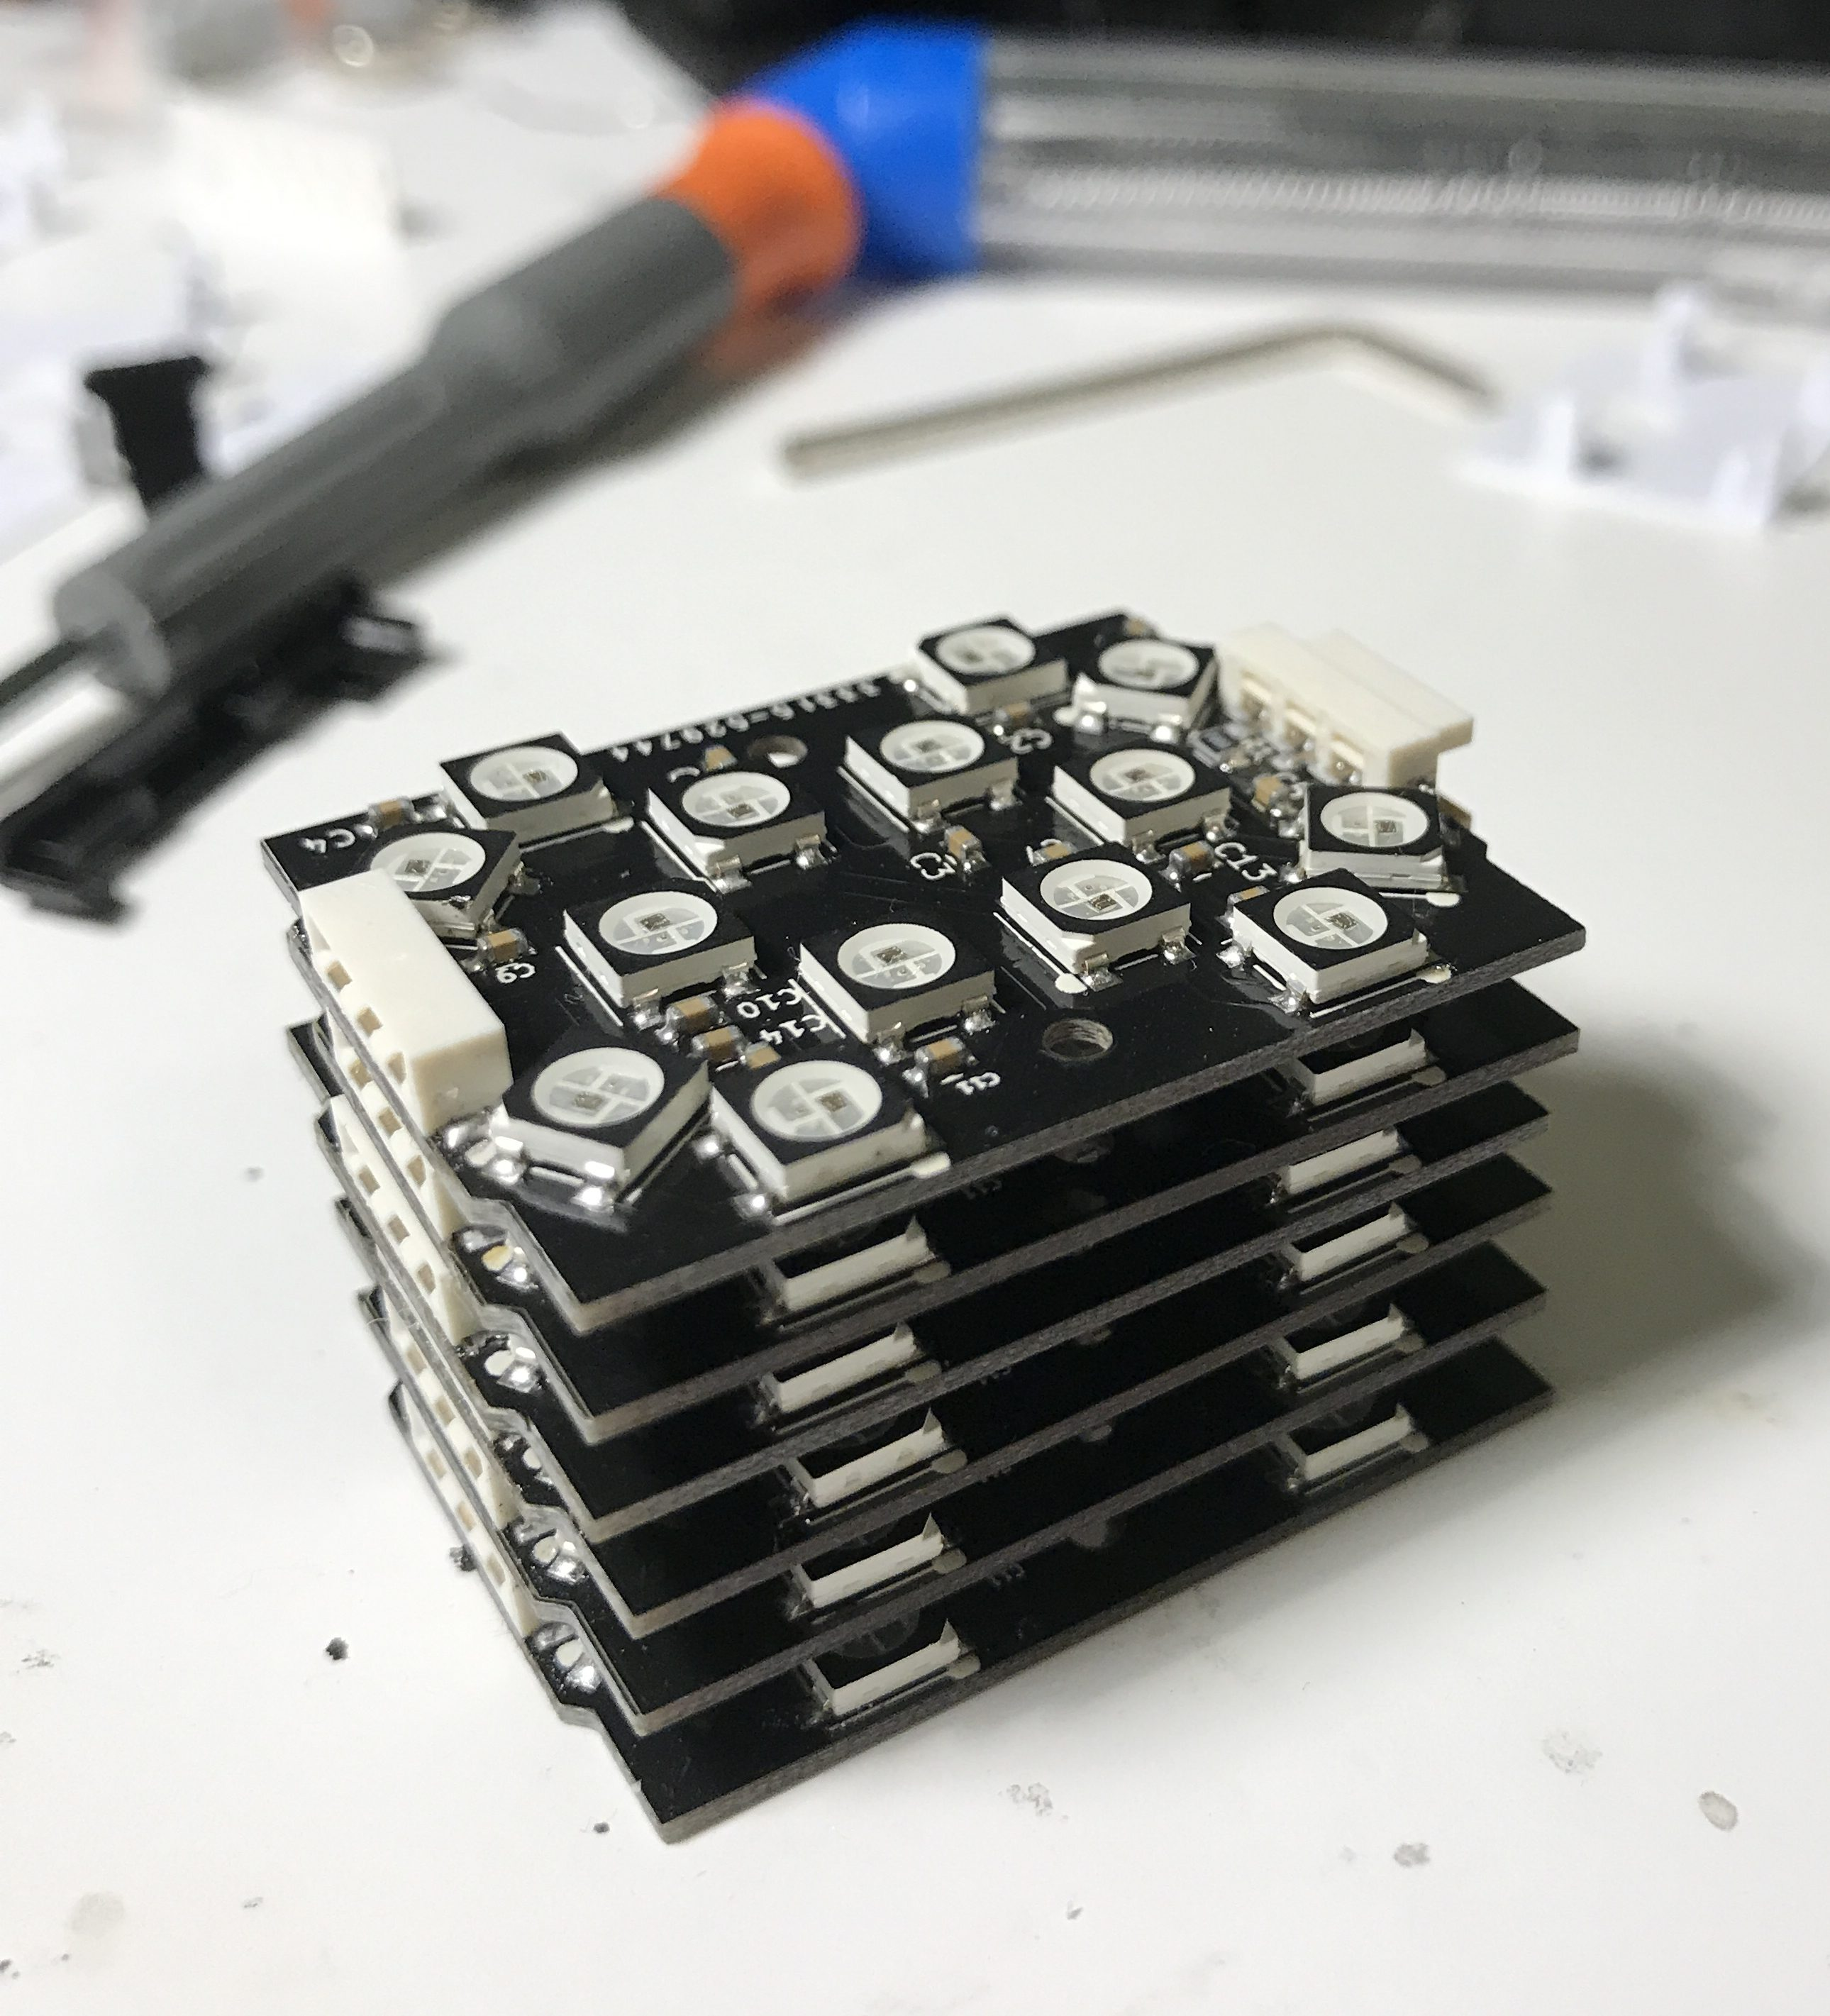 Soldered Modules